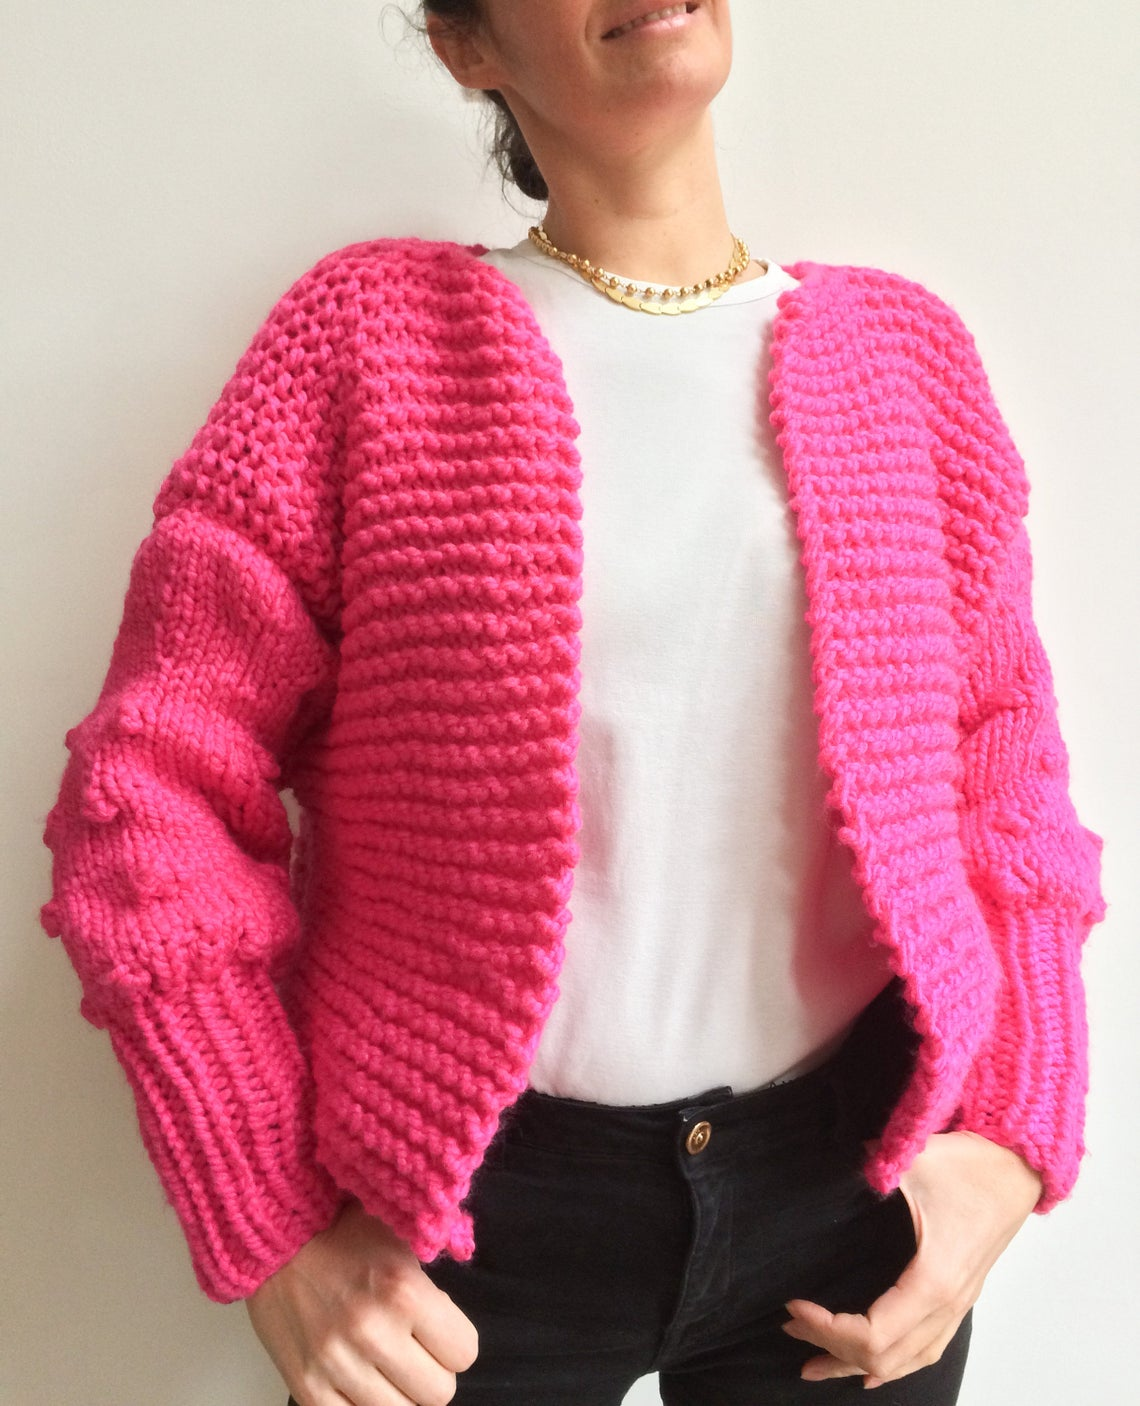 Knit a Fun Chunky Knit Cardigan With Bobble Sleeves ... Yes, Please!